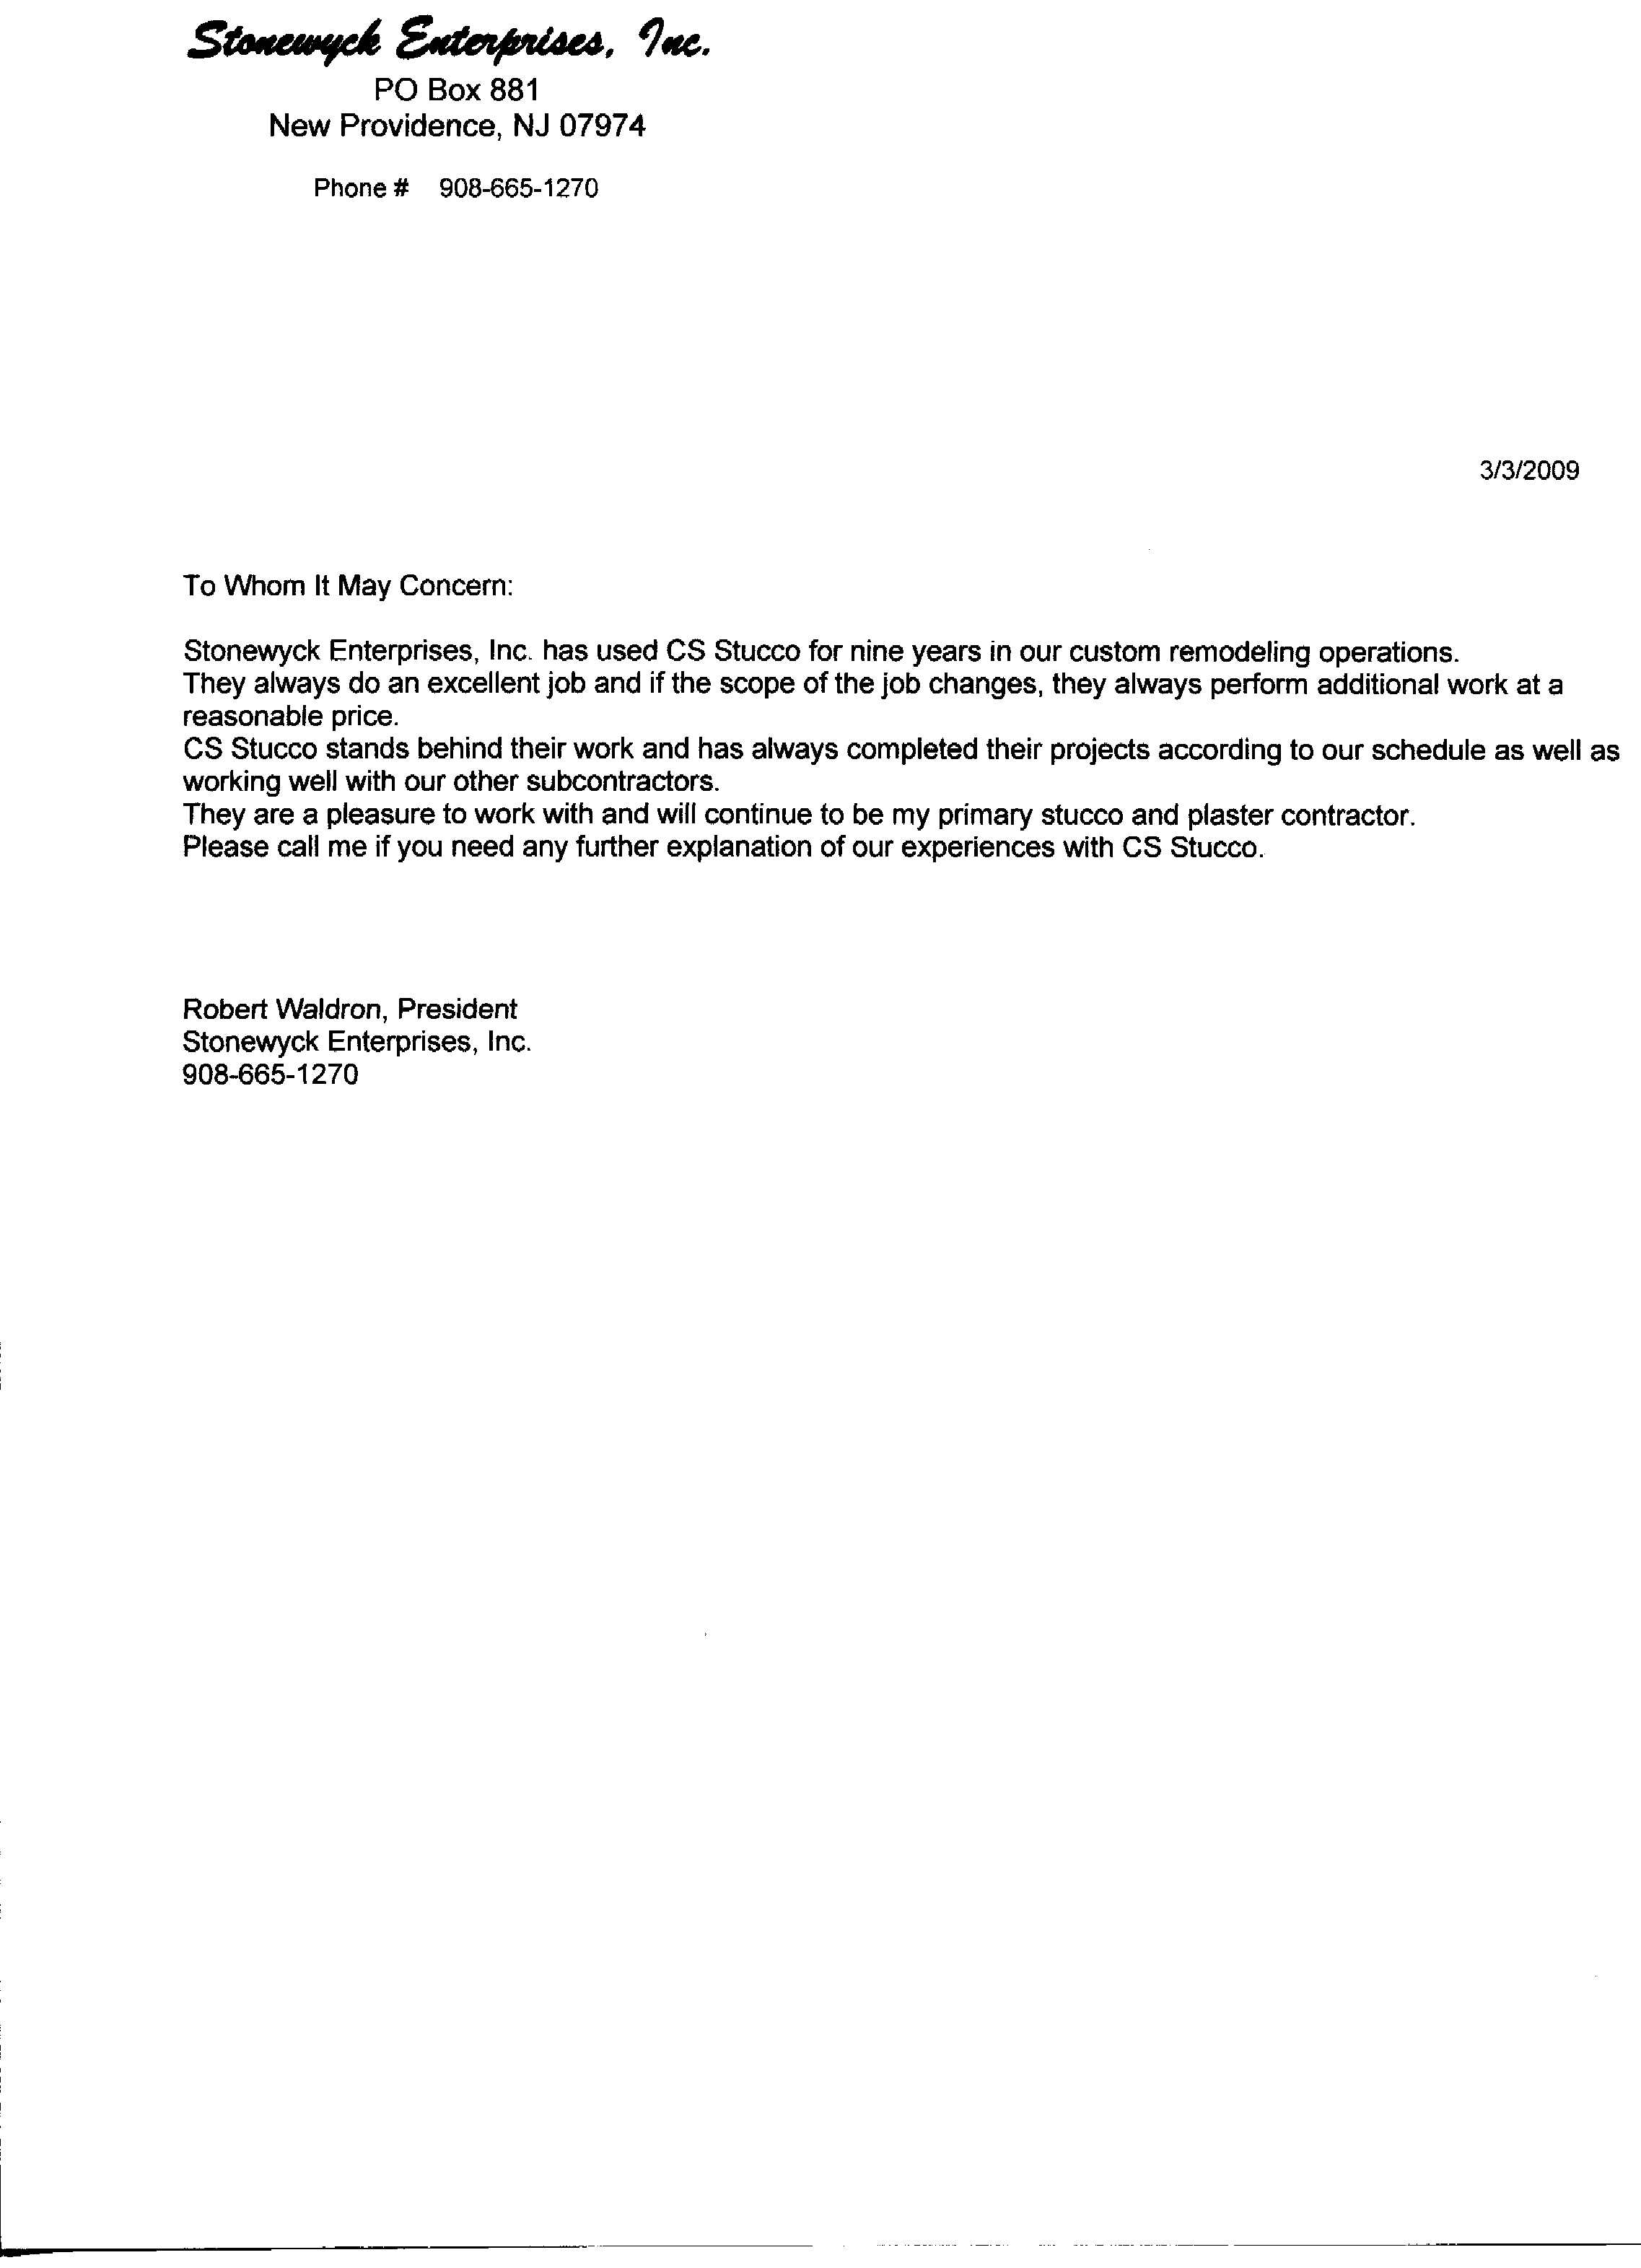 Subcontractor Warranty Letter Template Samples Letter